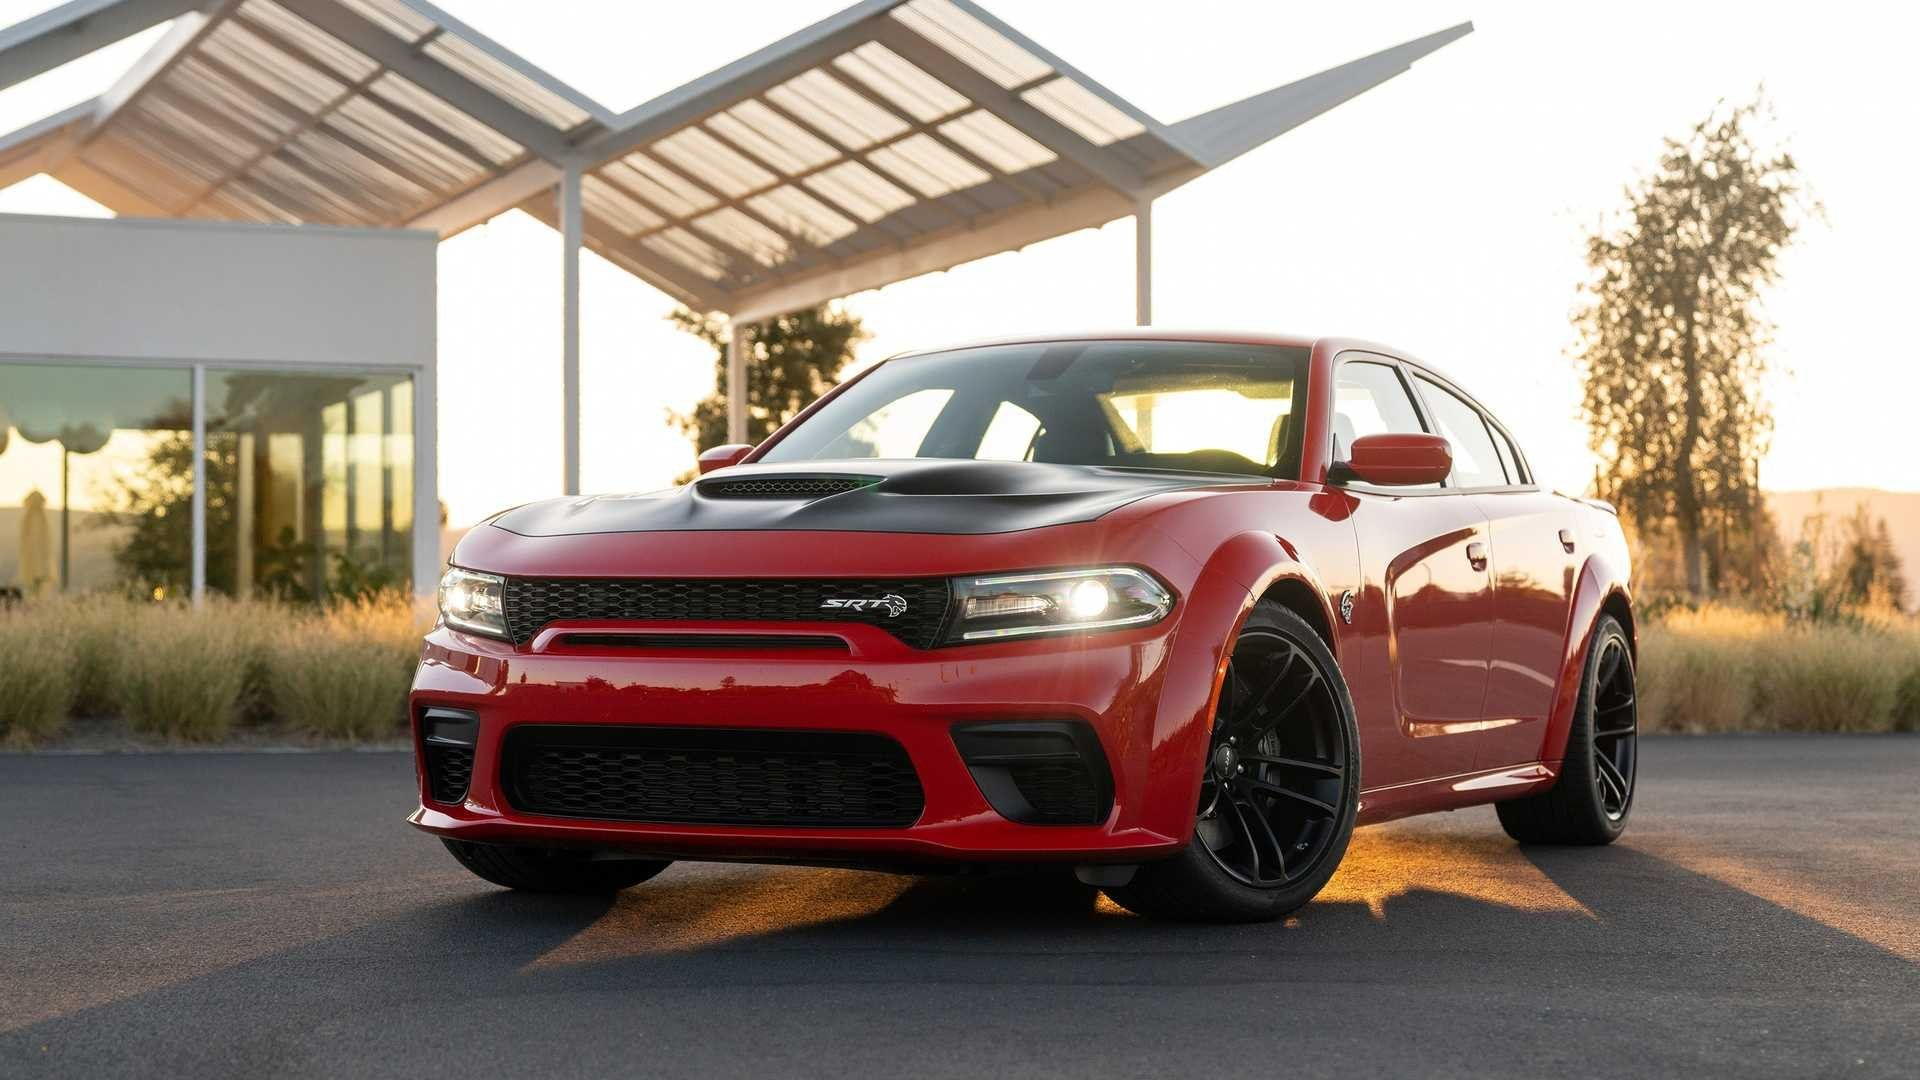 2020 Dodge Charger Srt8 Hellcat Pictures In 2020 Charger Srt Hellcat Dodge Charger Srt Charger Srt